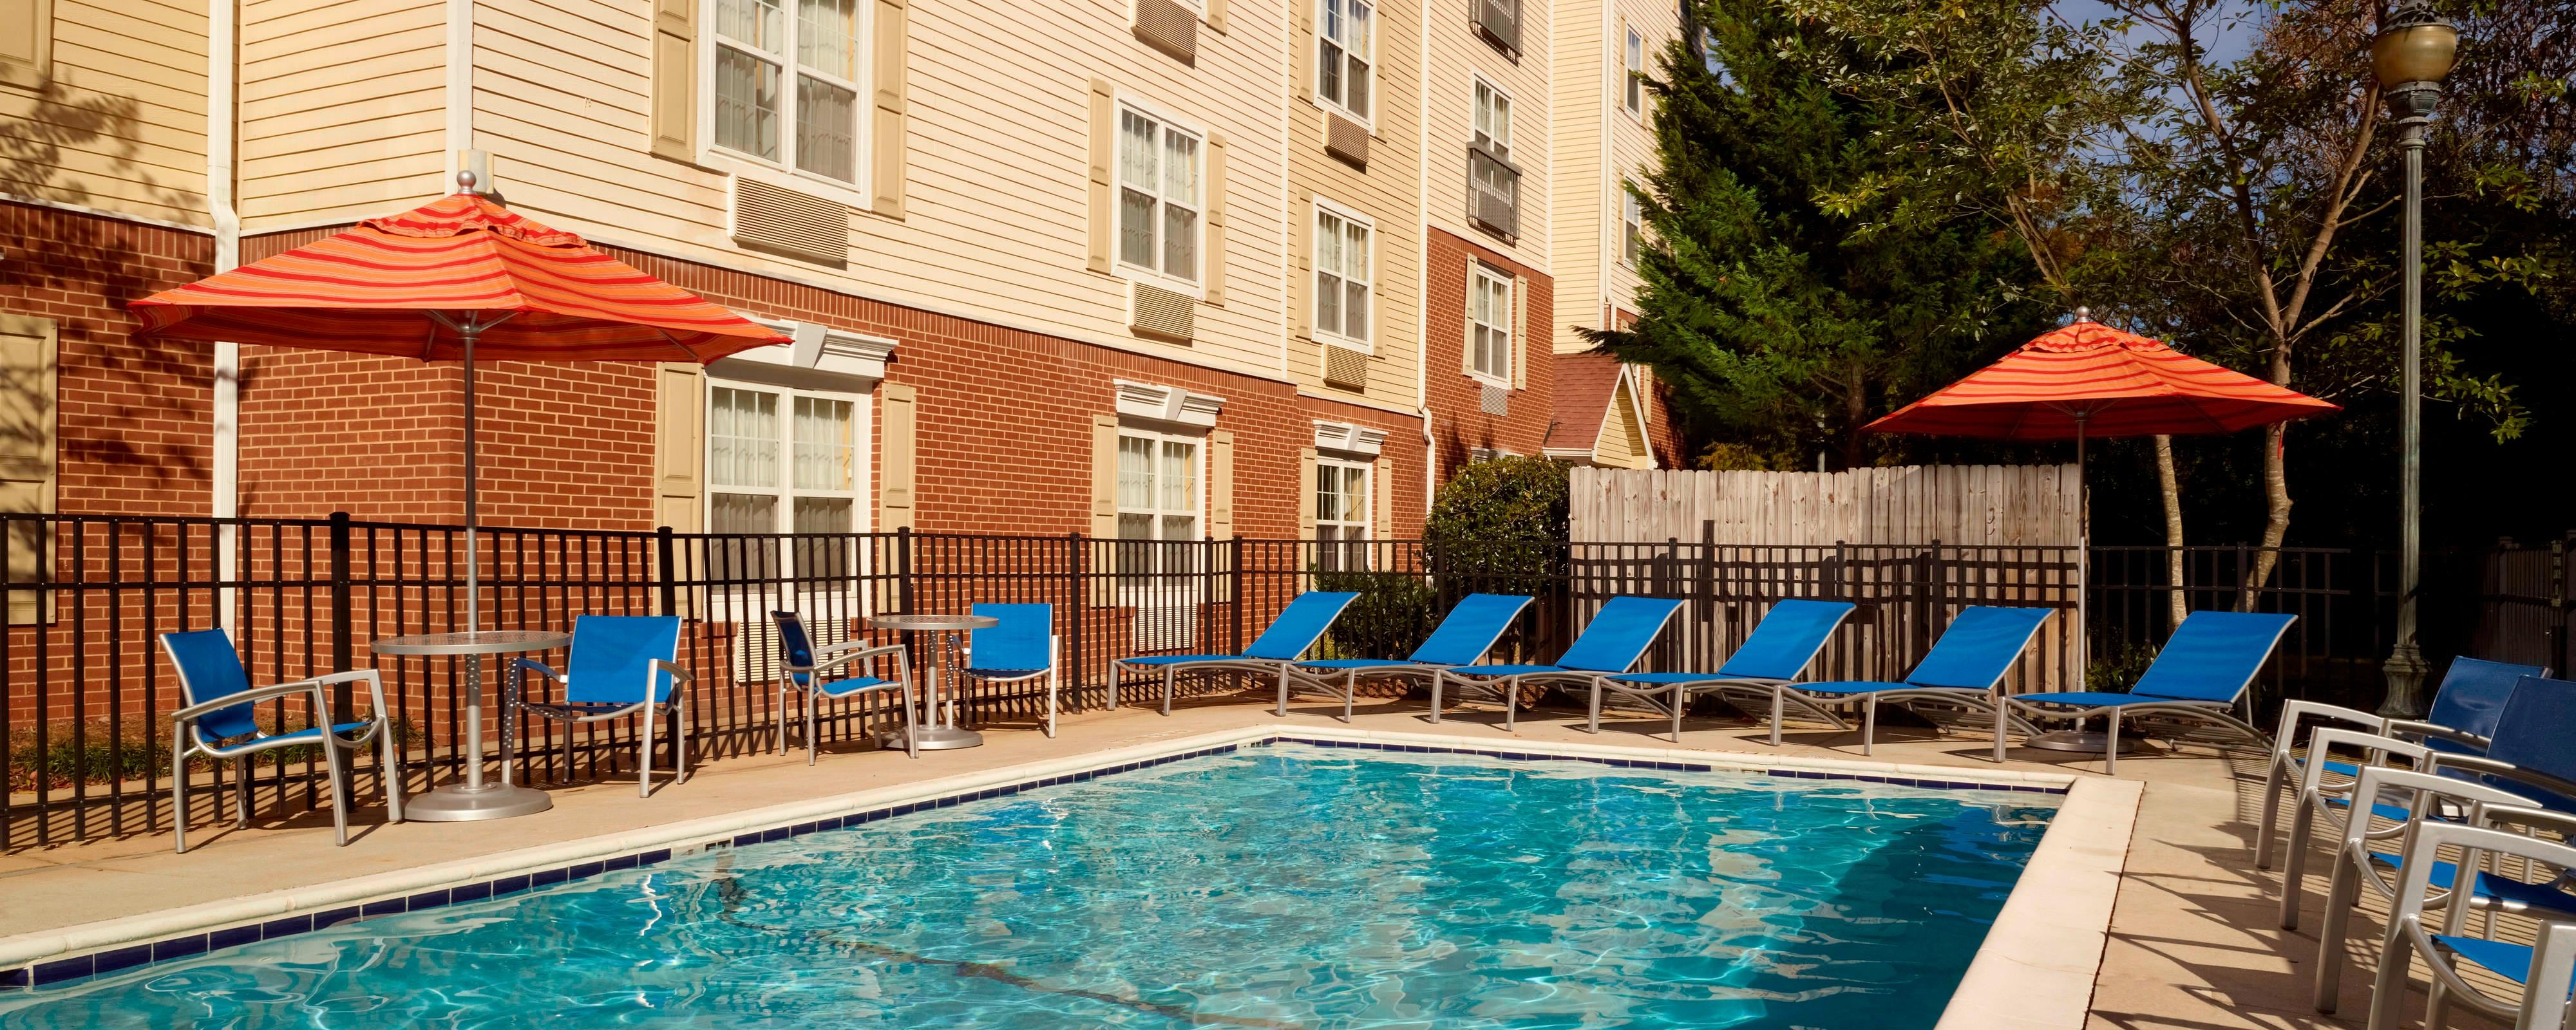 Northlake Atlanta Hotel – Pool